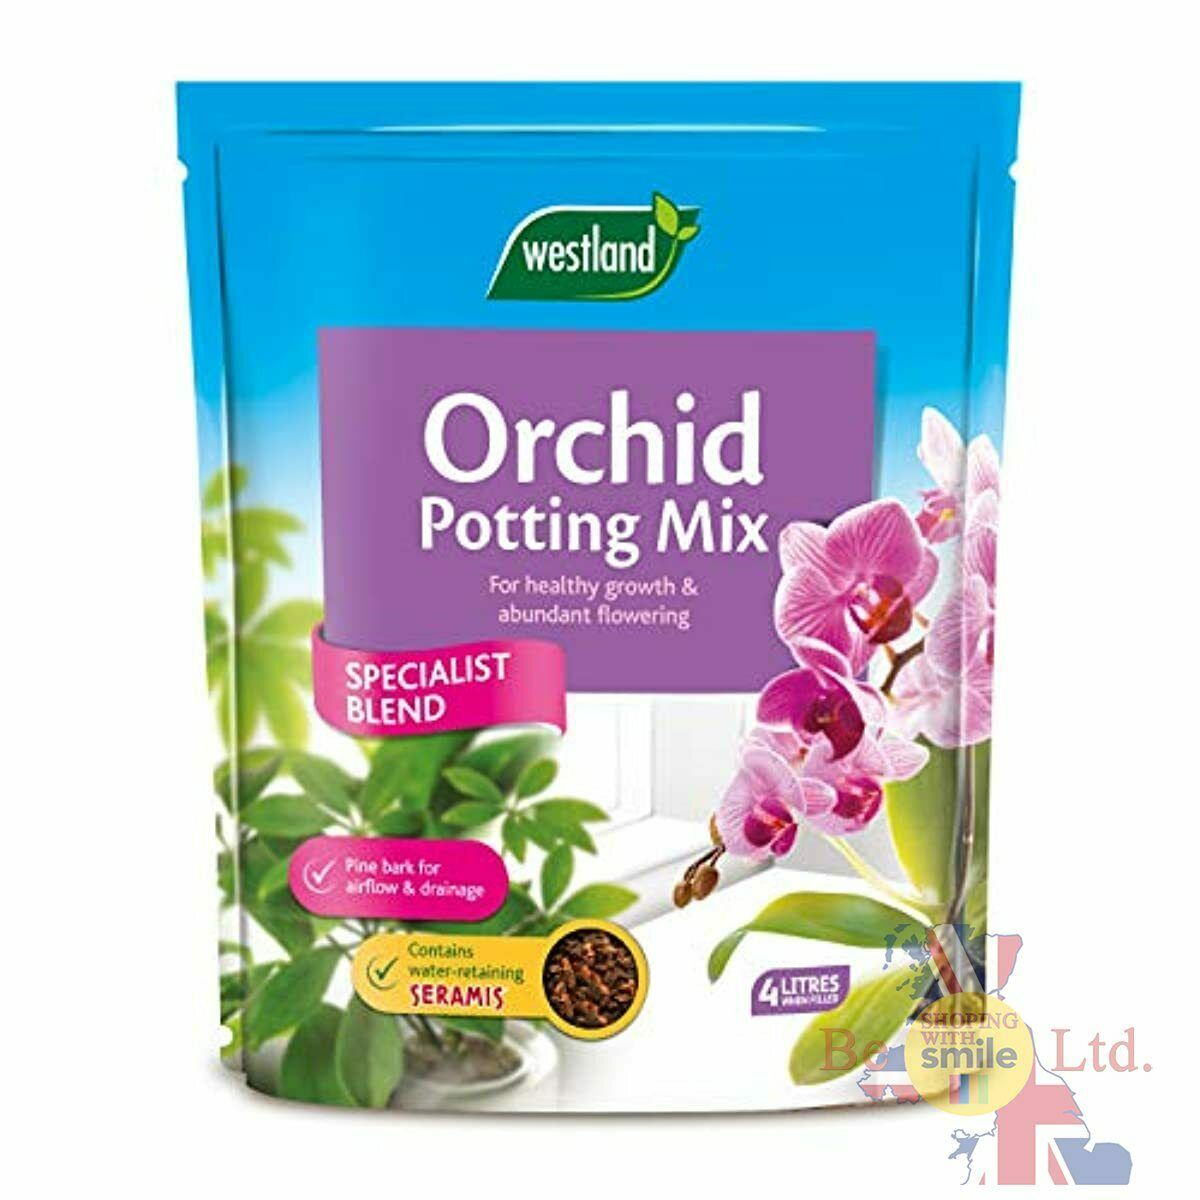 Westland Orchid 4L Potting Compost Mix Healthy Growth Flowering With Seramis